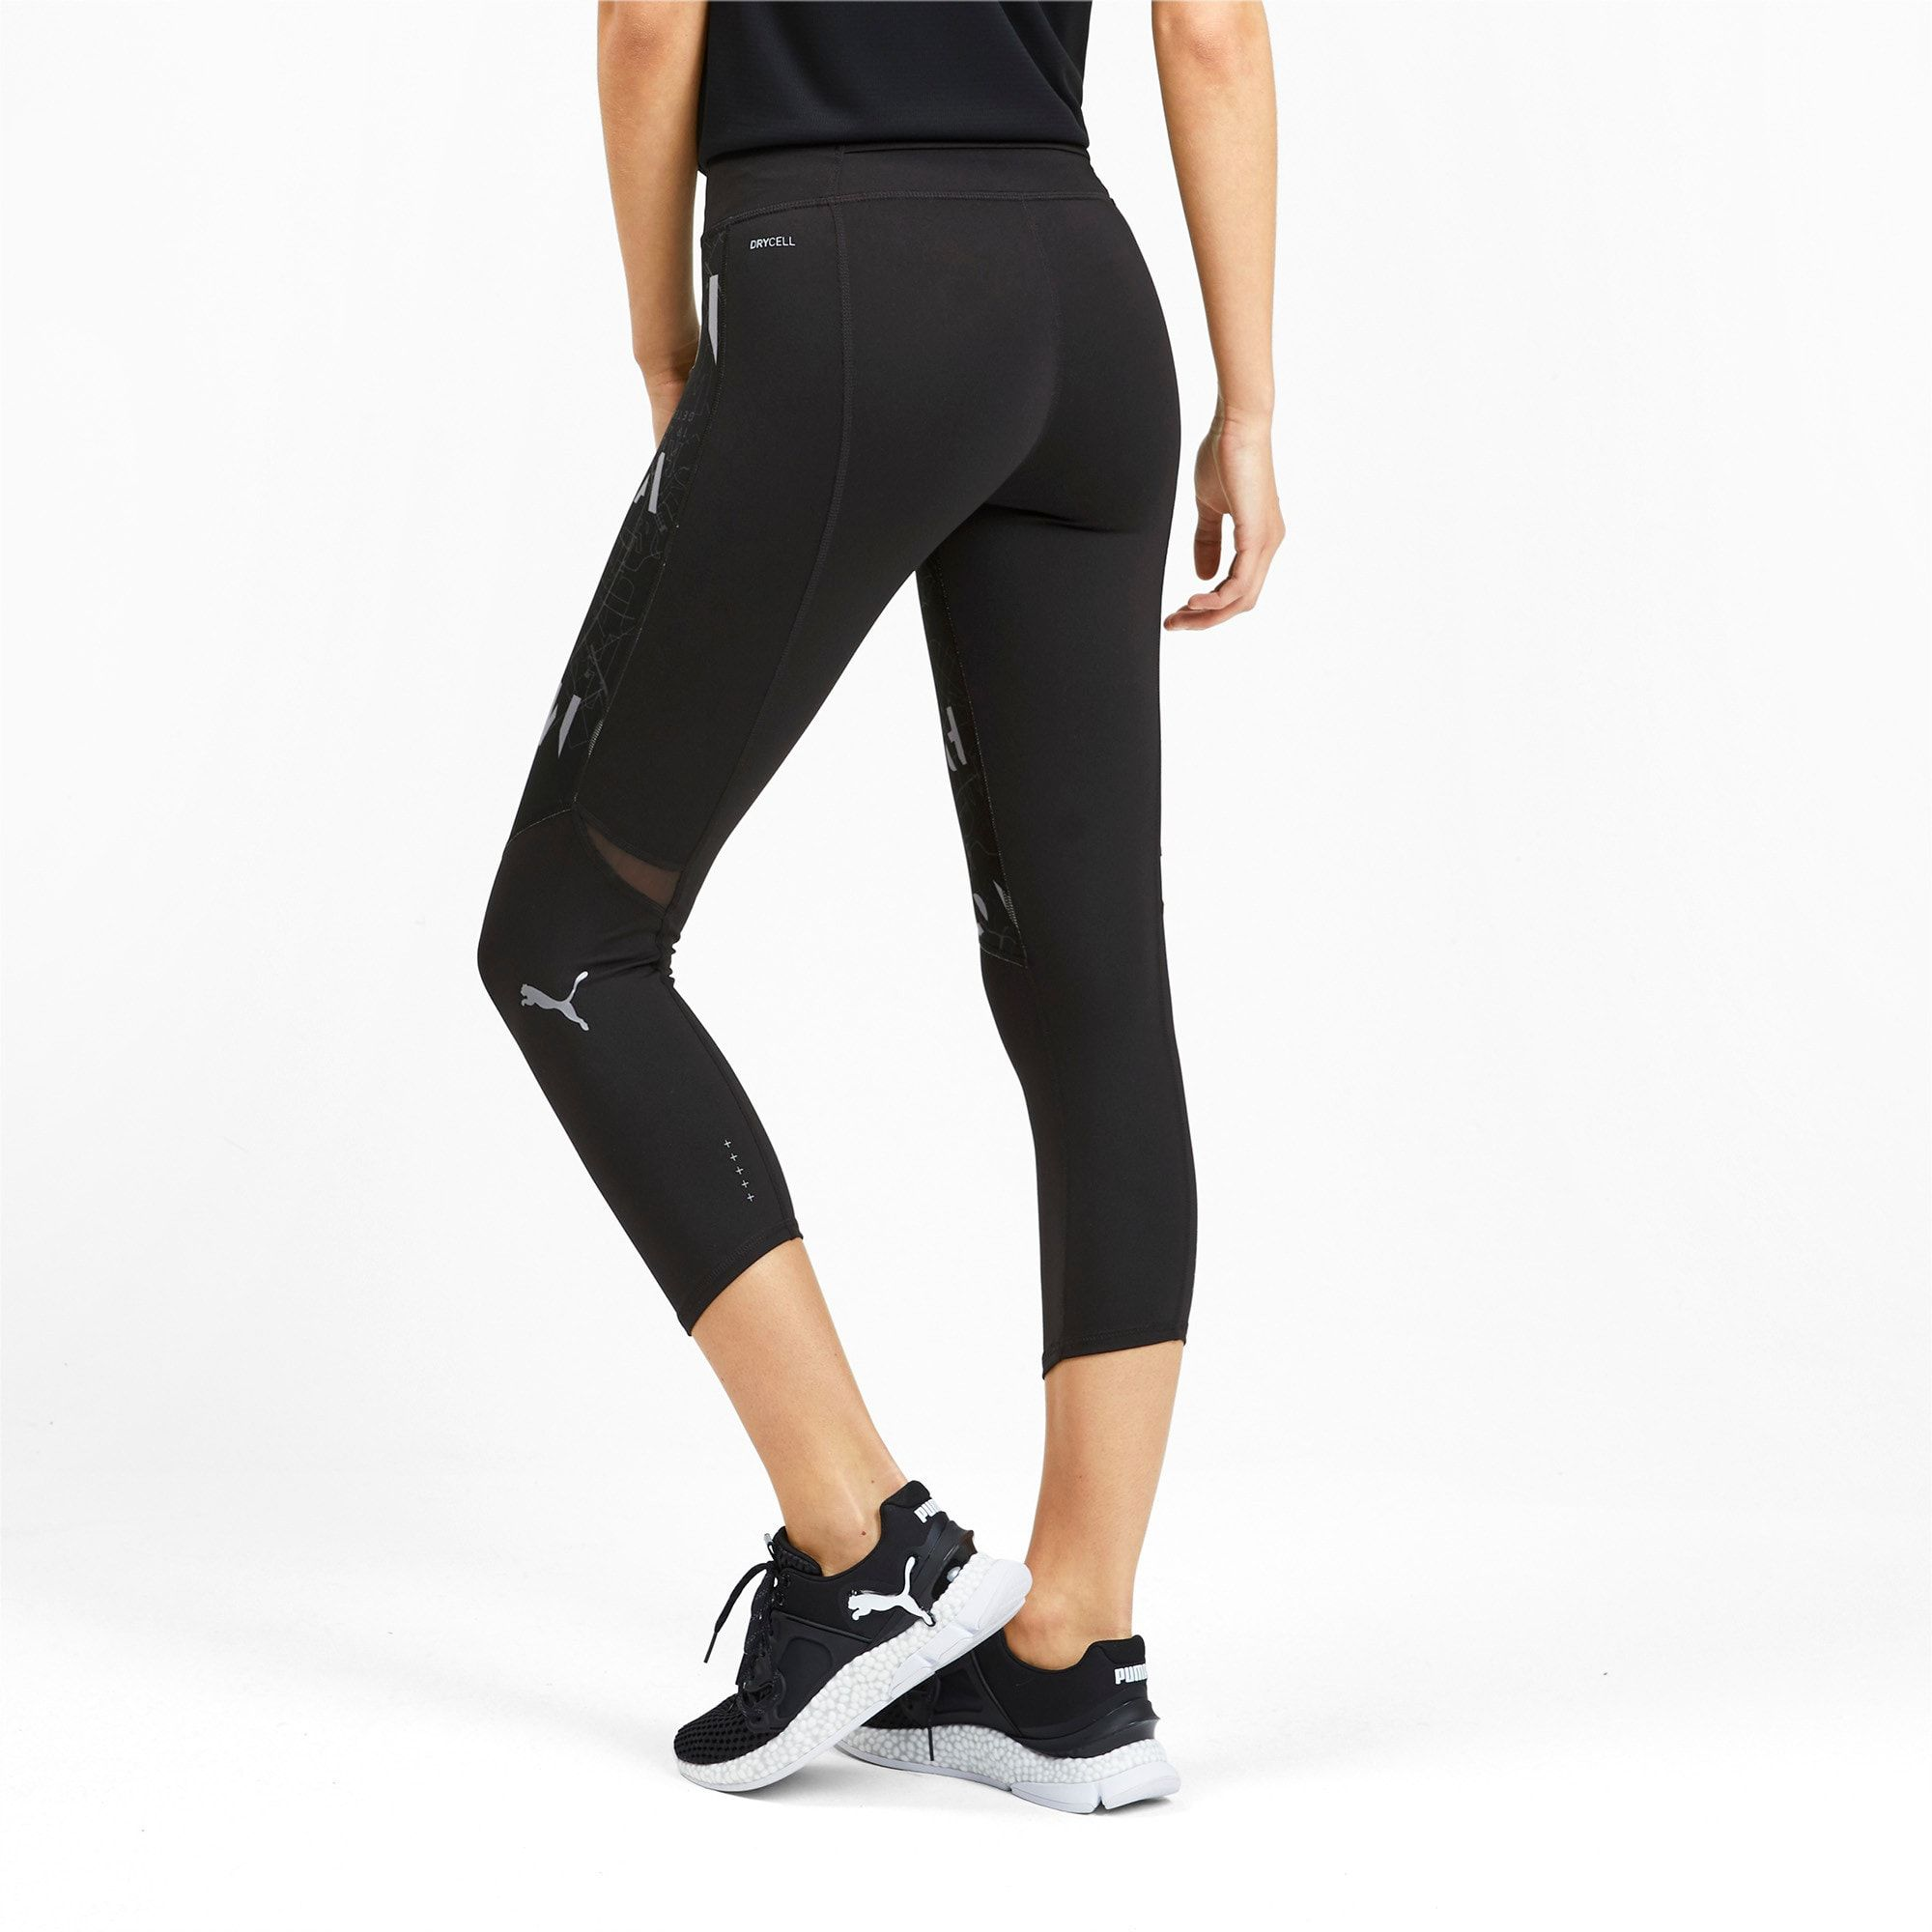 PUMA Graphic 3/4 Women's Running Tights in Black/Reflective ...